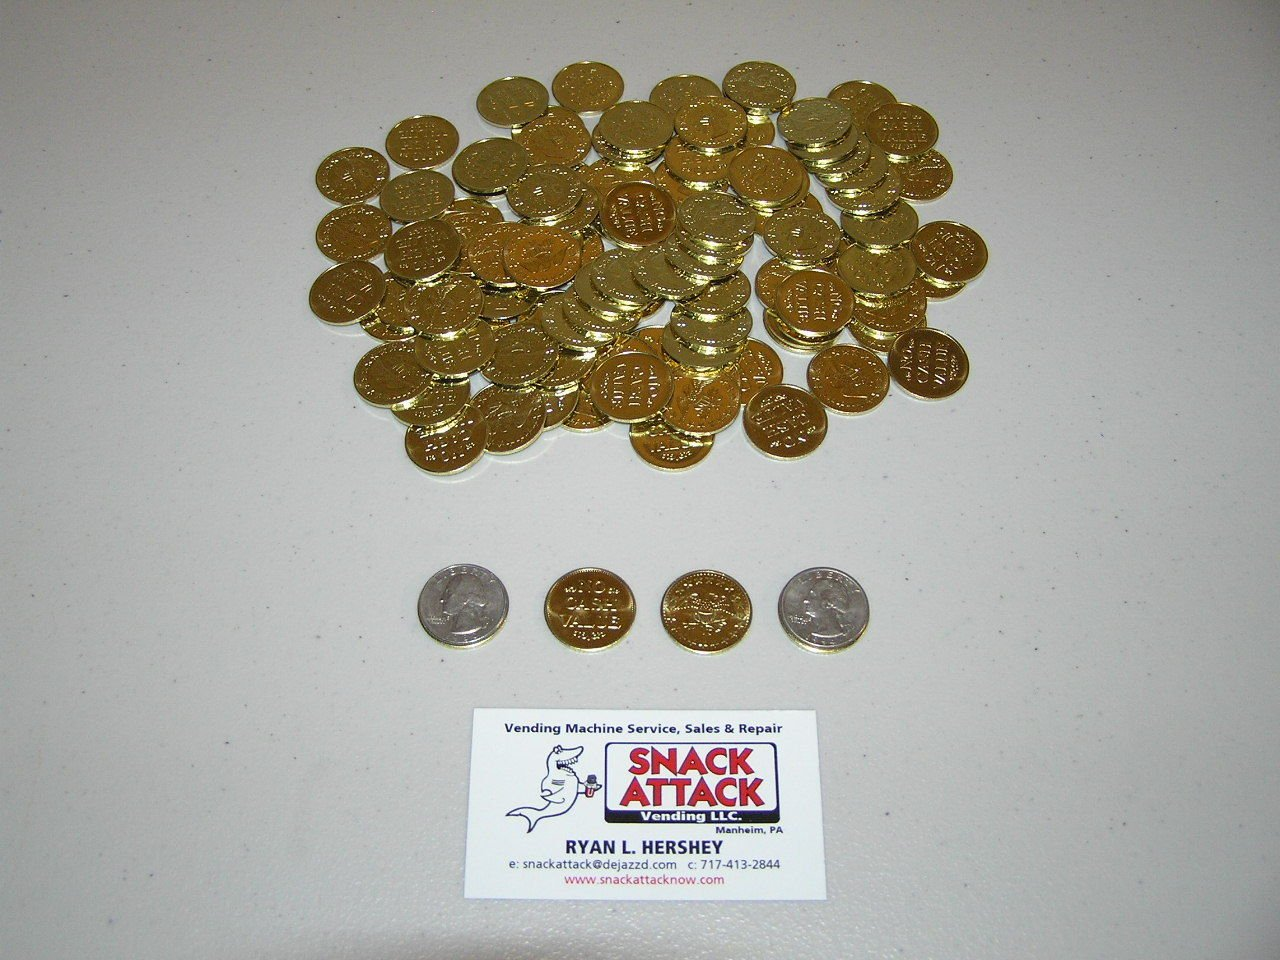 (100) Amusement Vending Machine 0.984 TOKENS or COINS - Gold Plated / Free Ship!